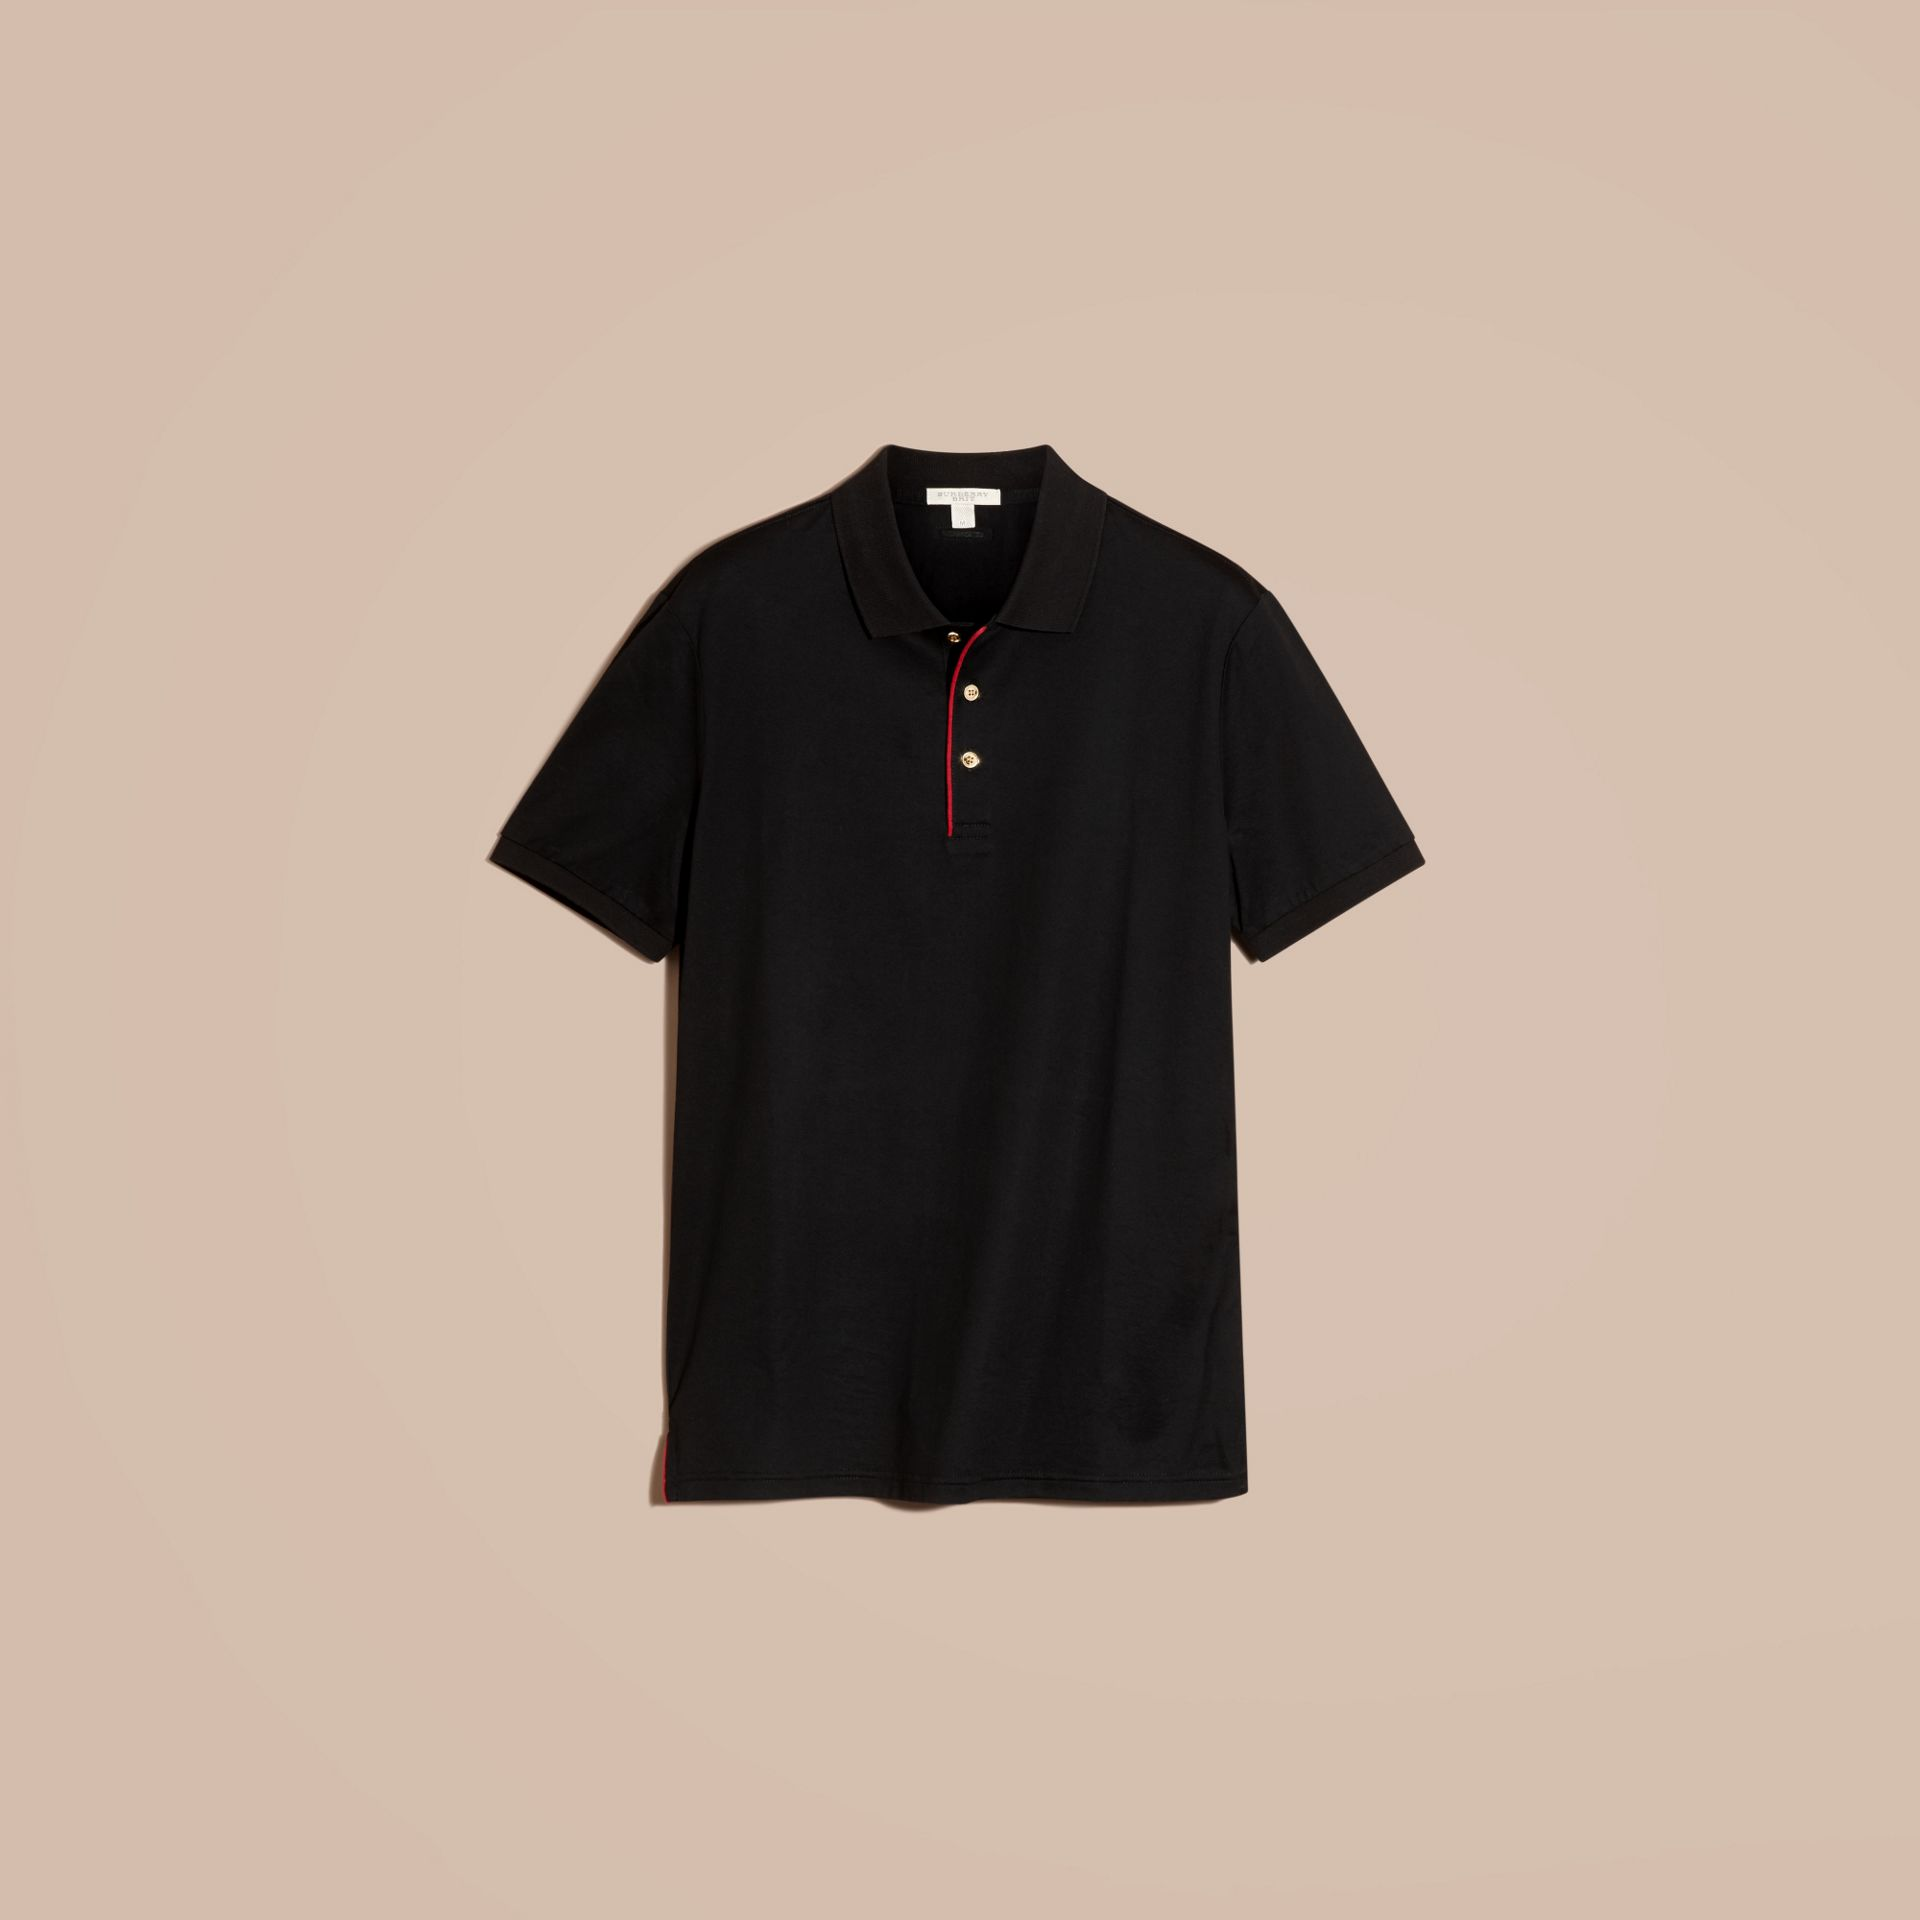 Black Polo militaire en coton Black - photo de la galerie 4